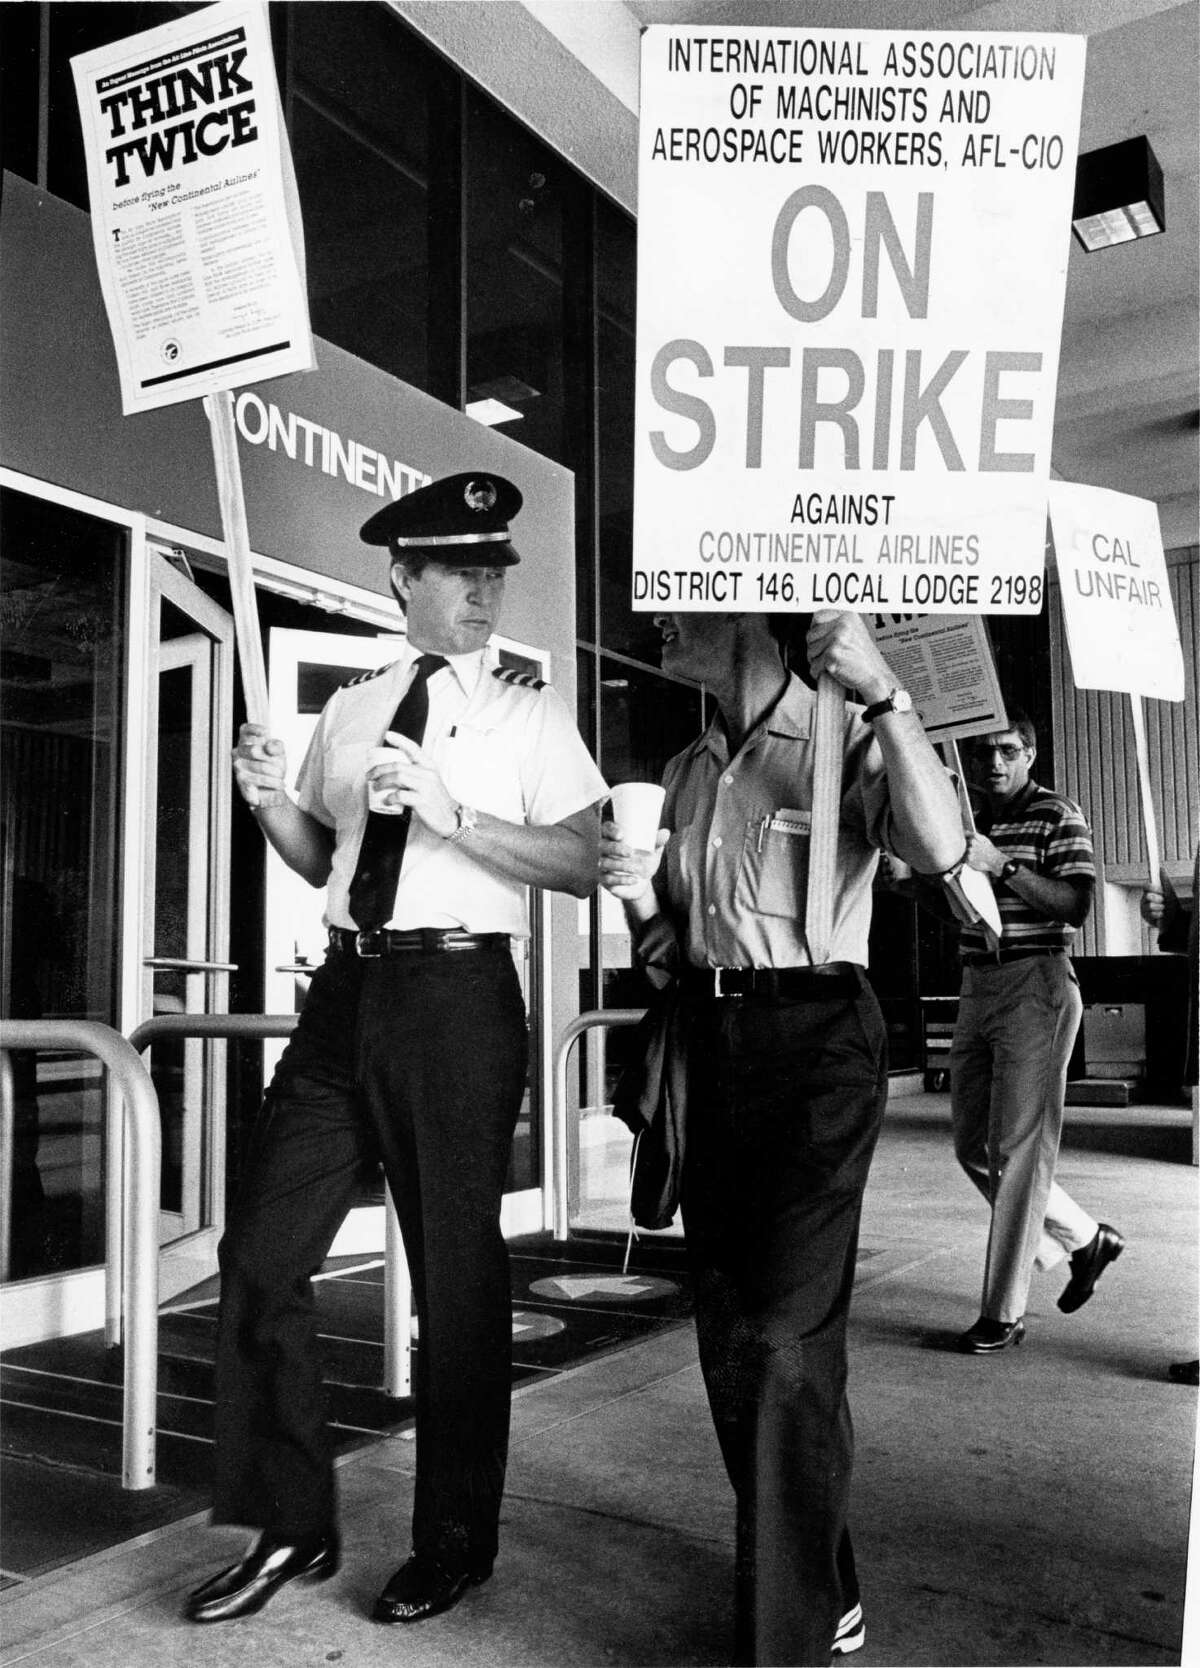 Strike It soon became a female-dominated field. Julia O'Connor led successful strikes against New England Telephone Co. in 1919 and 1923 to get better pay and working conditions.